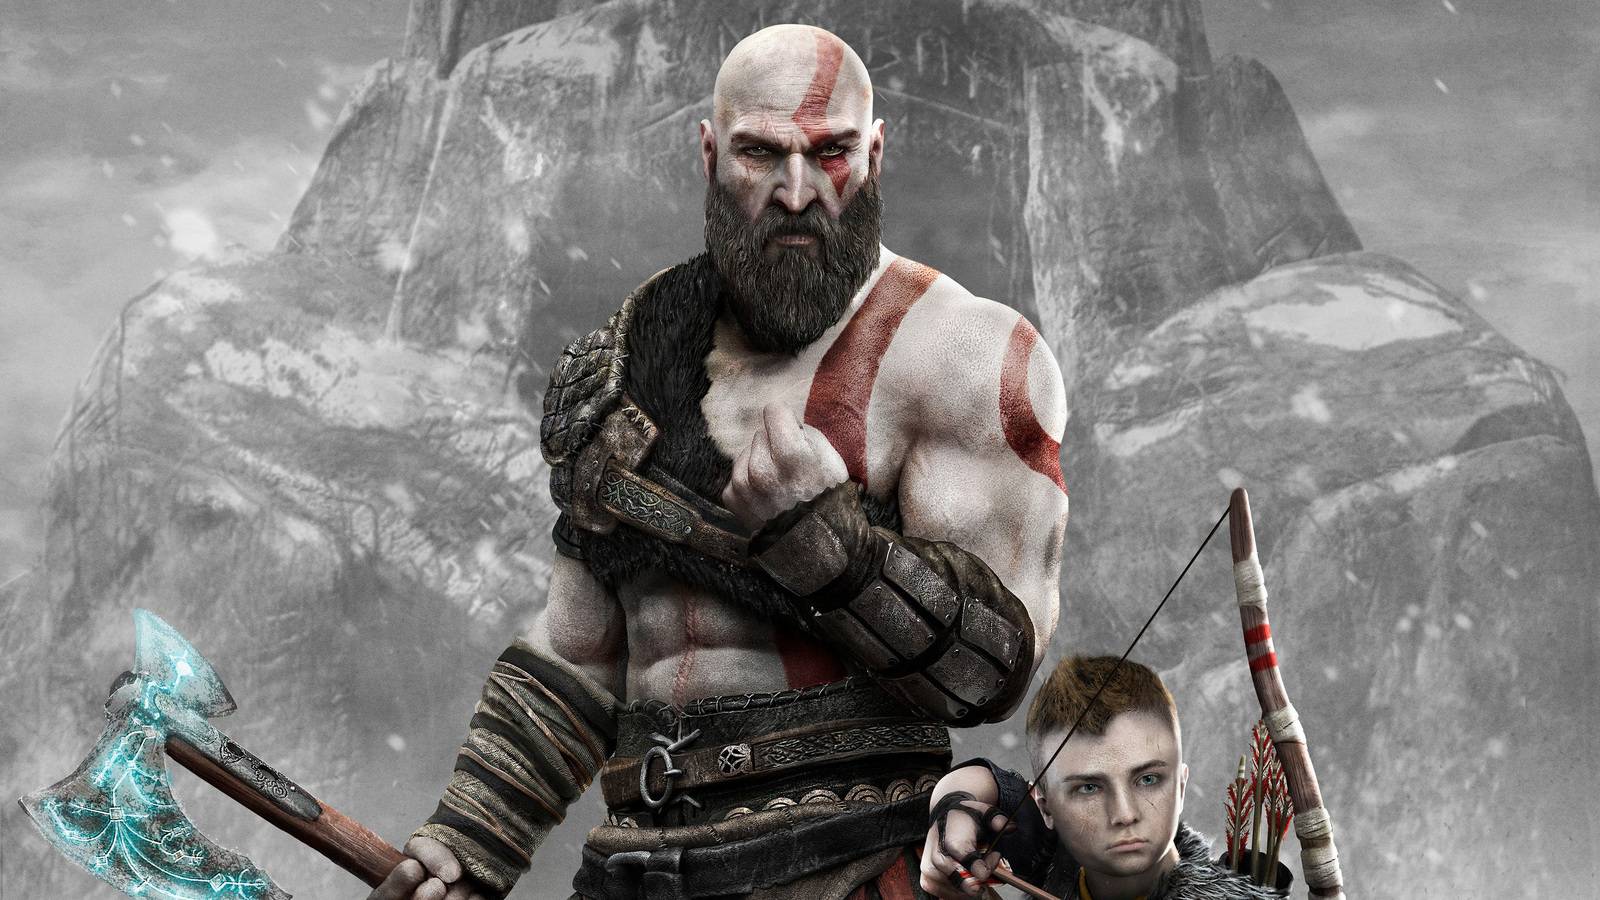 1600x900 Kratos And Atreus God Of War 4 4k 2018 1600x900 Resolution